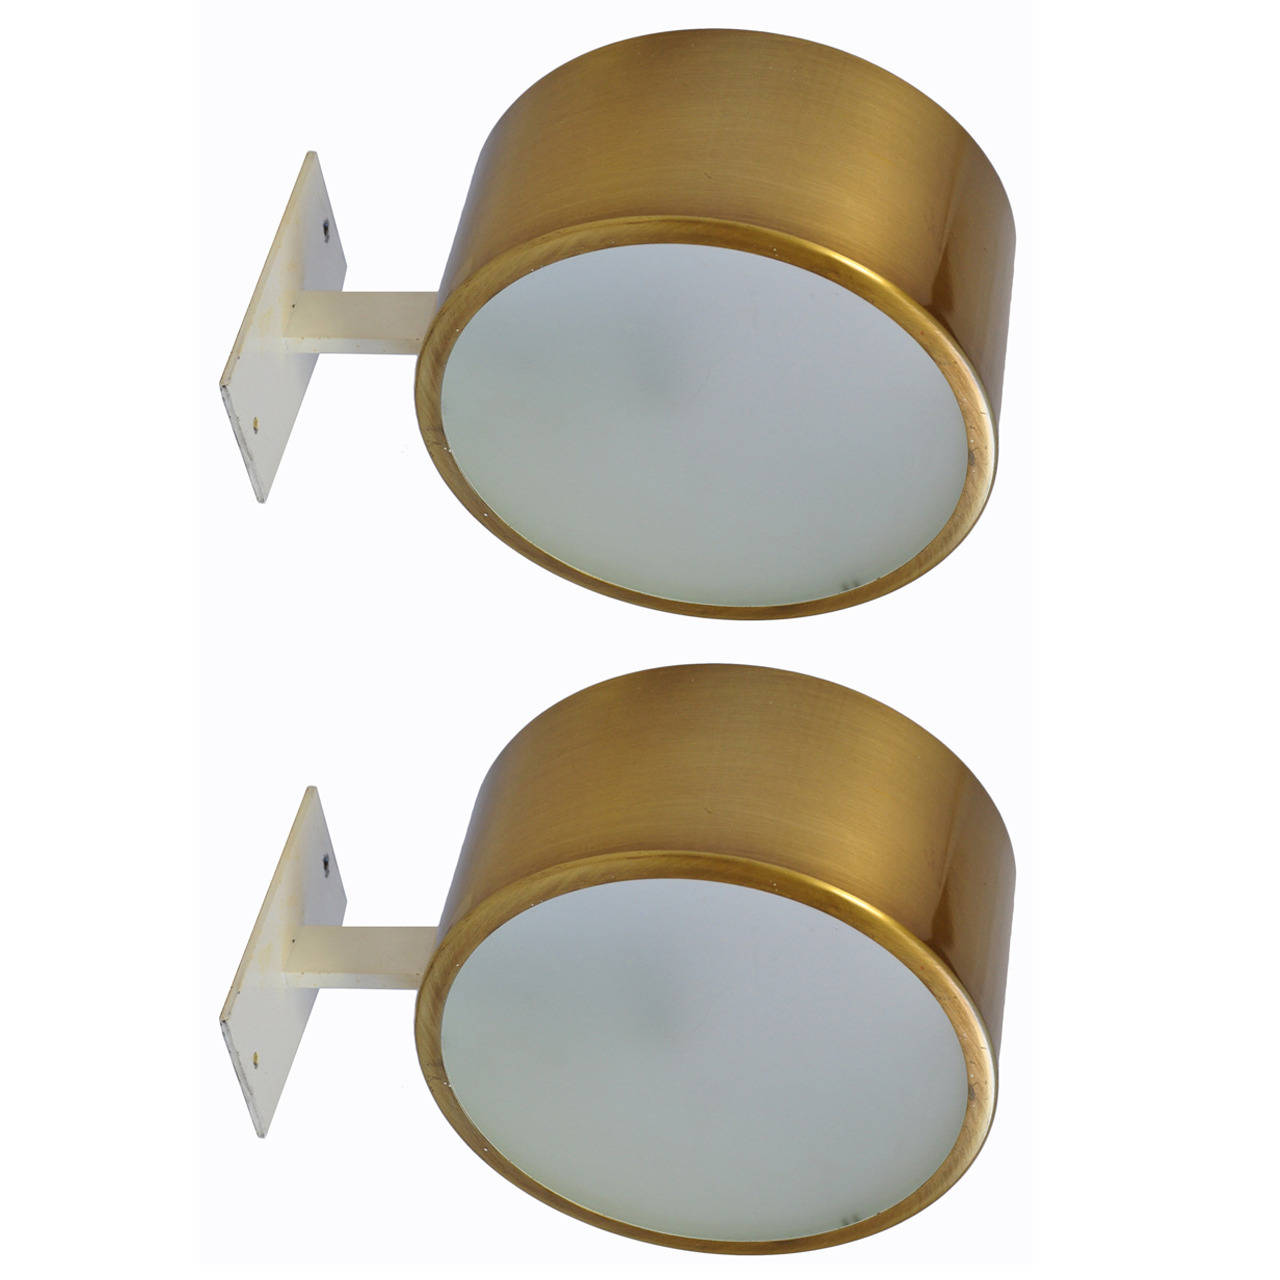 Pair of Brass and Glass Appliques by Hans-Agne Jakobsson Image